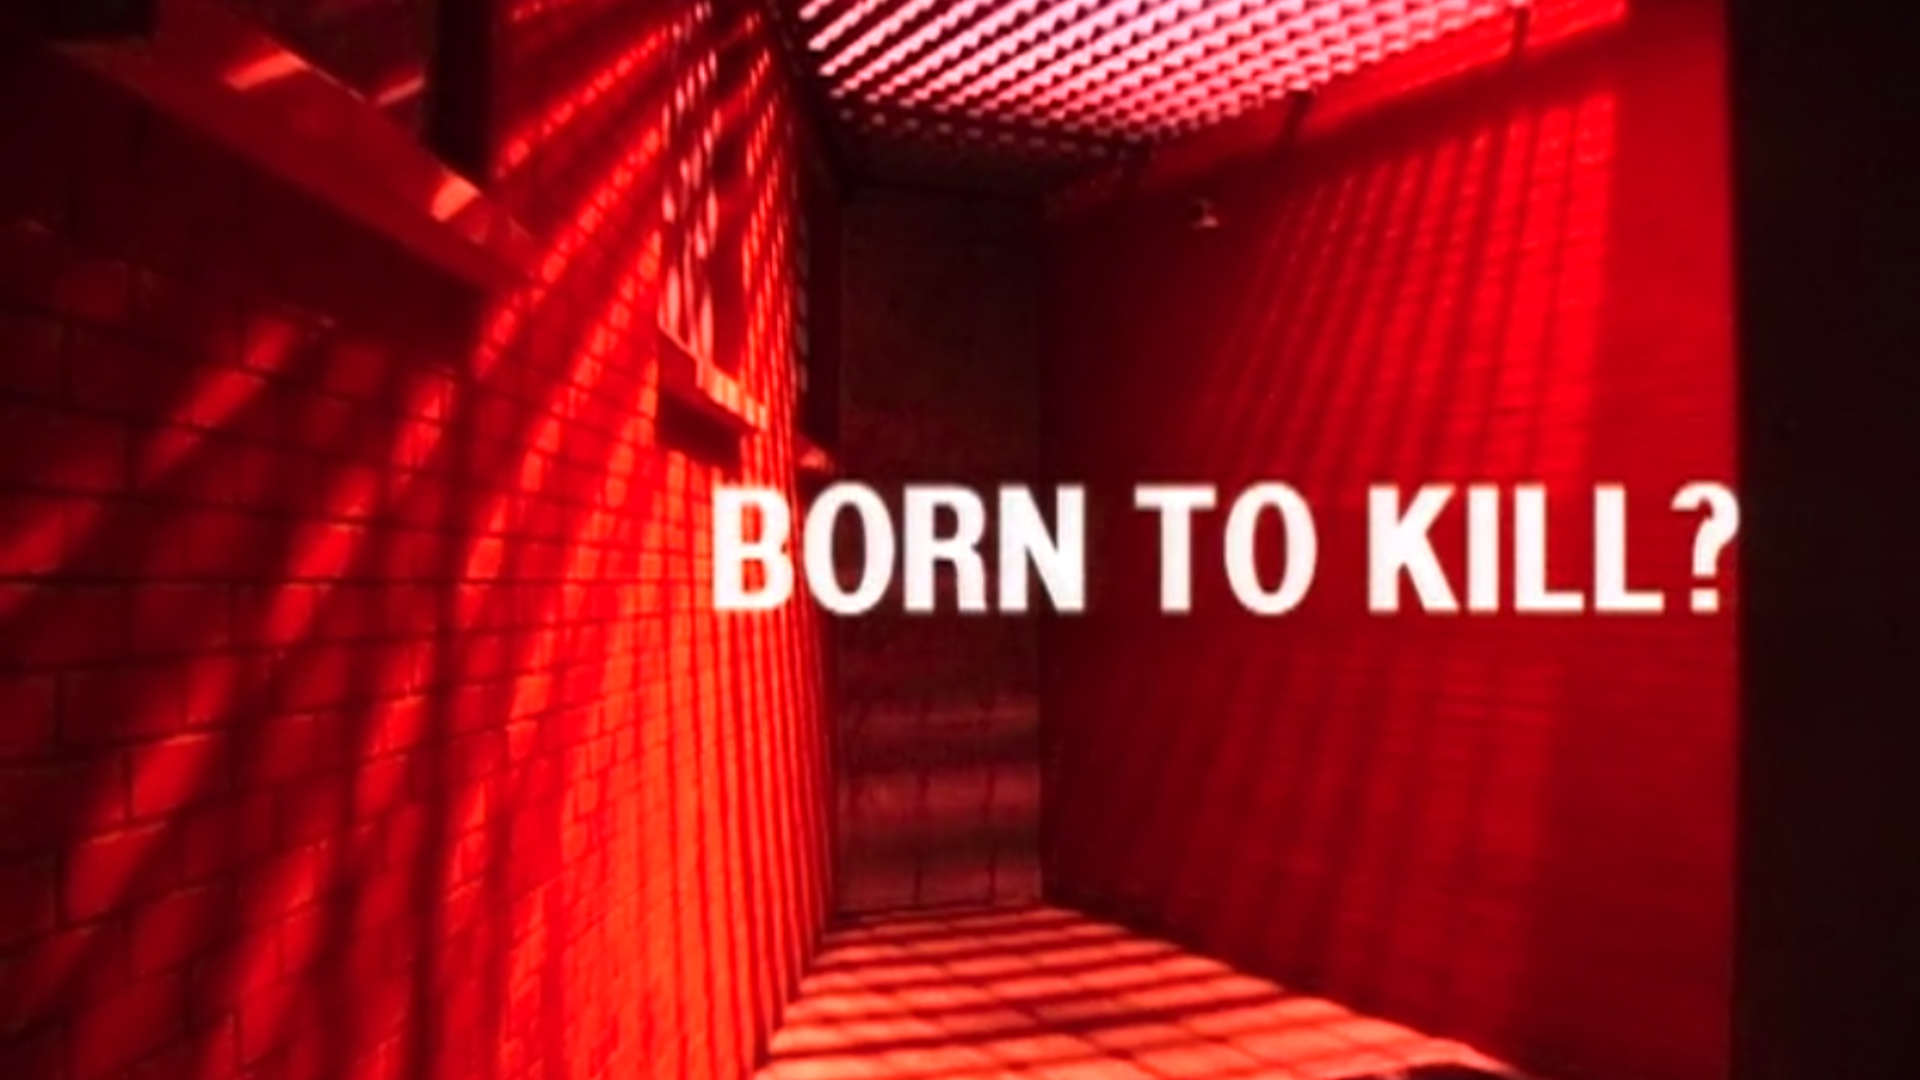 Watch Full Movie - Inside the Criminal Mind - Born To Kill